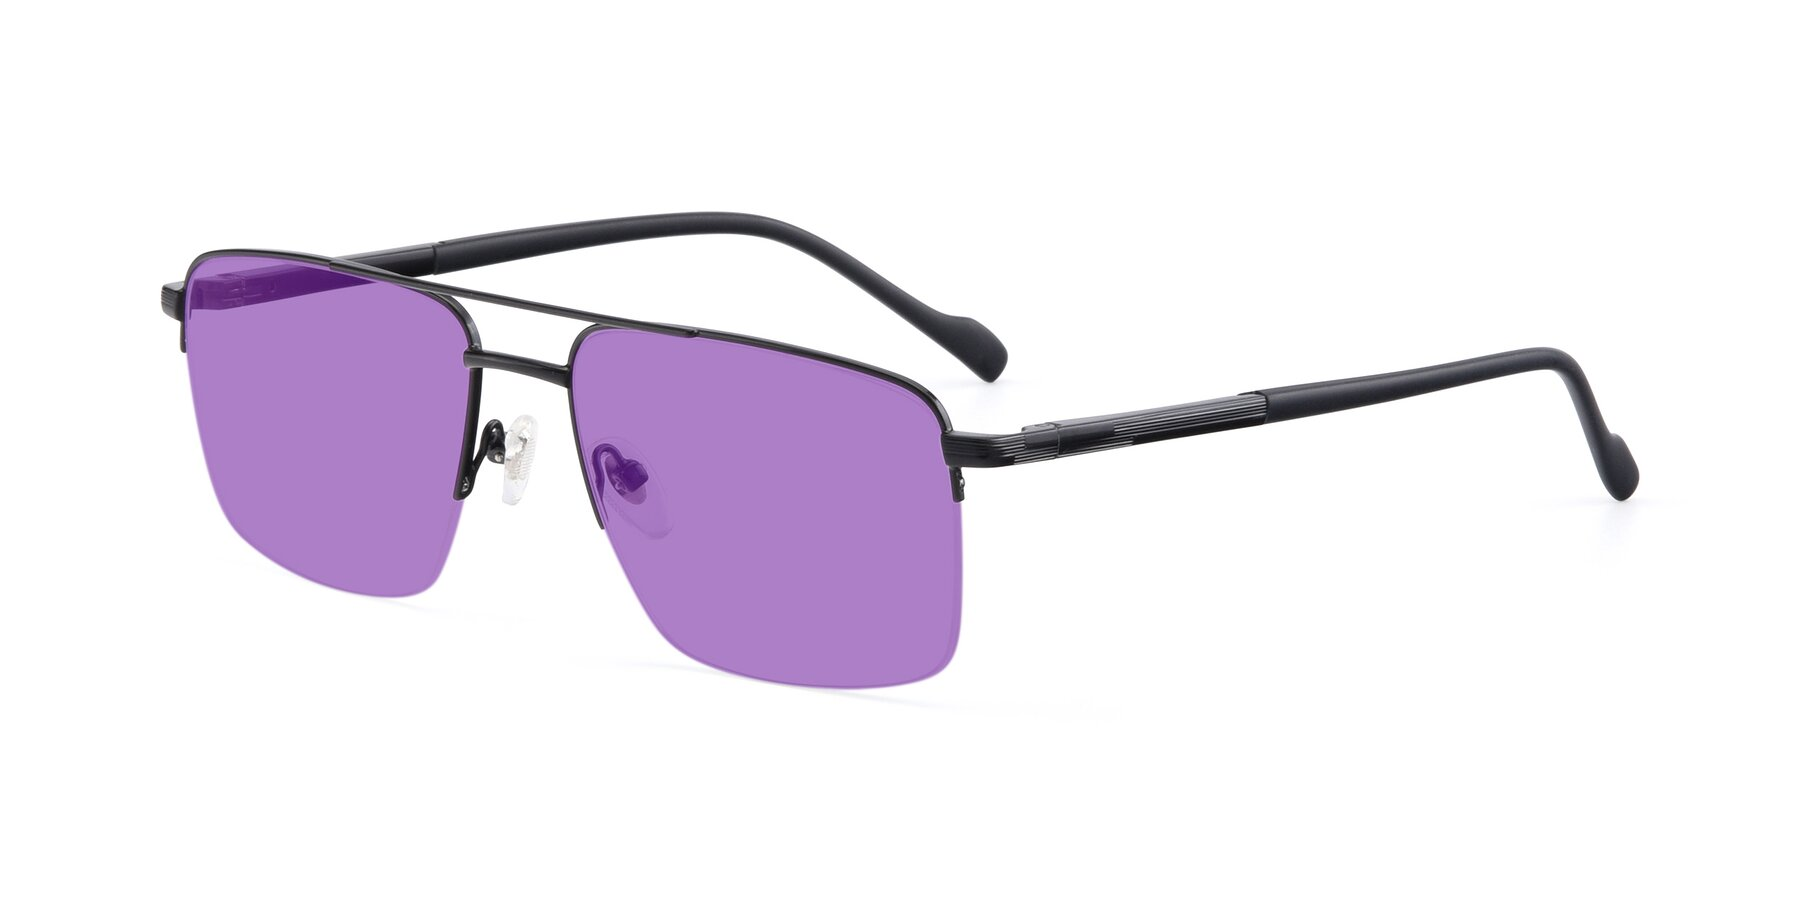 Angle of 19013 in Black with Medium Purple Tinted Lenses